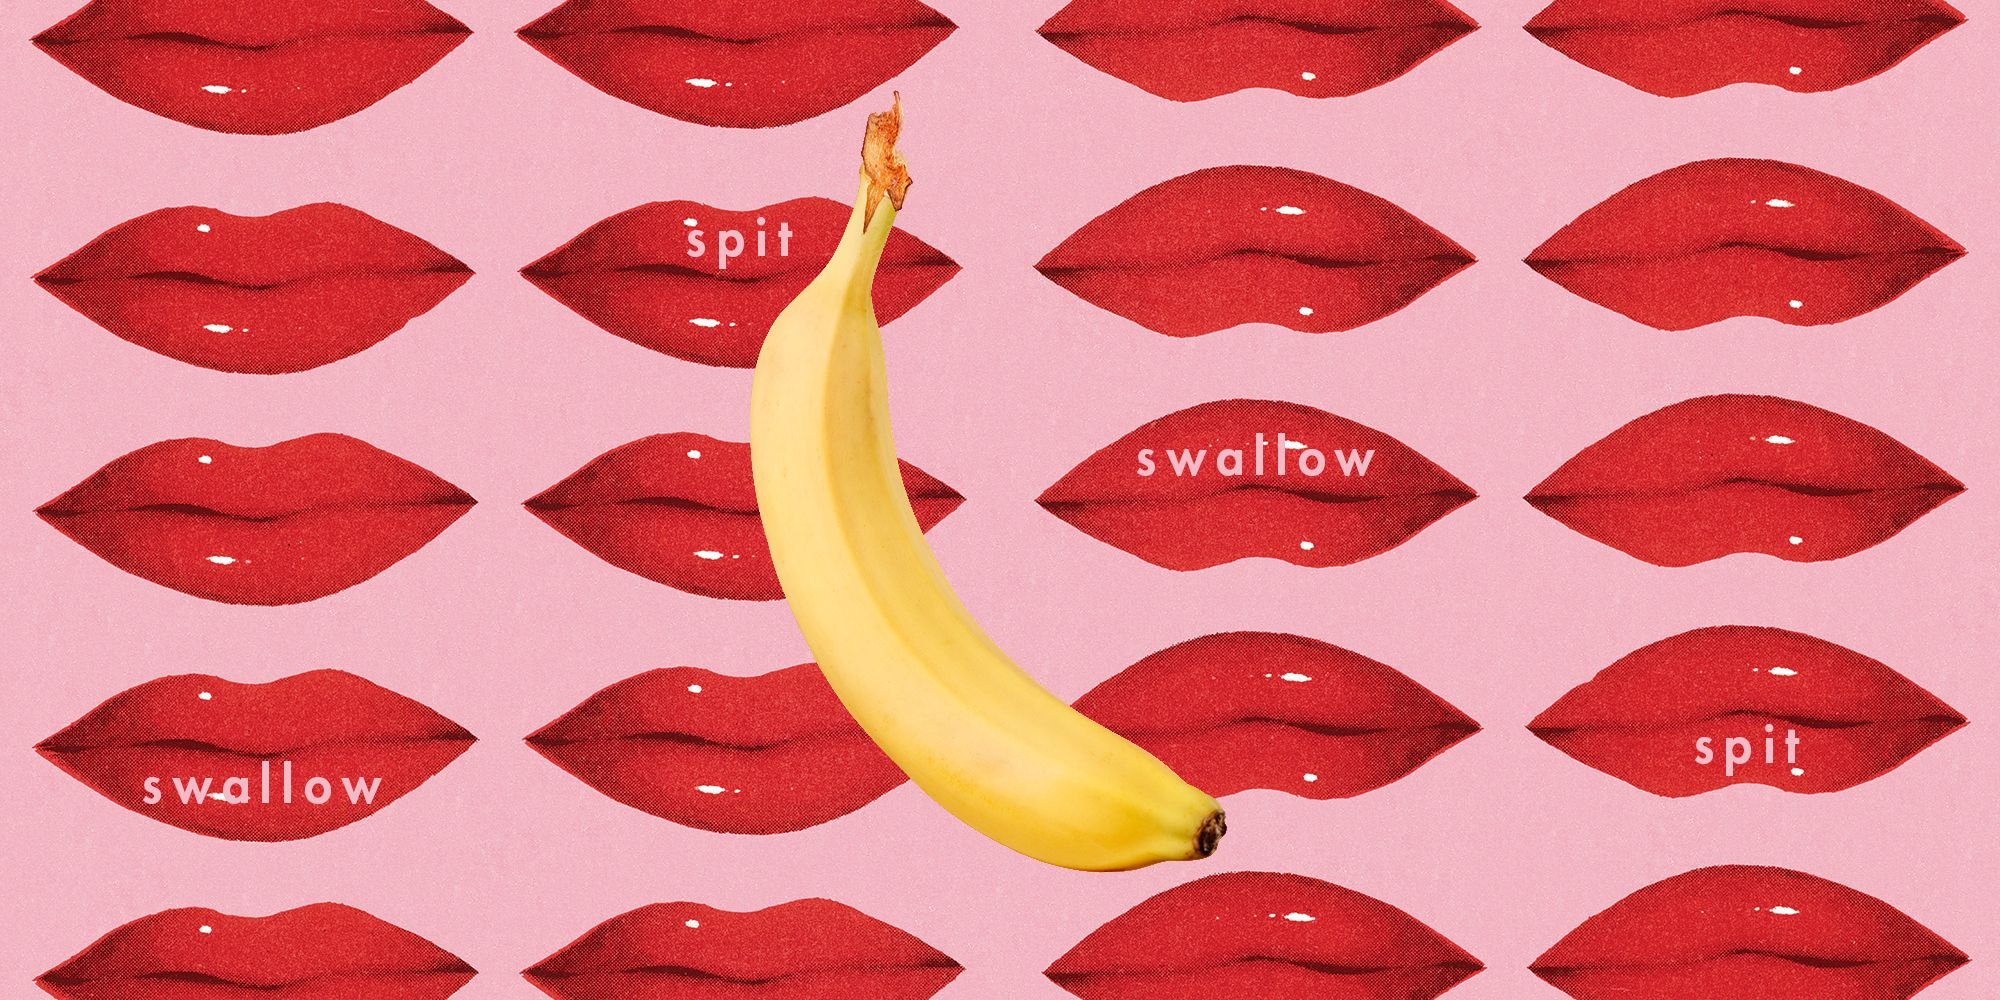 Spit or Swallow - A Blow Job Beginner's Guide to Spitting or Swallowing